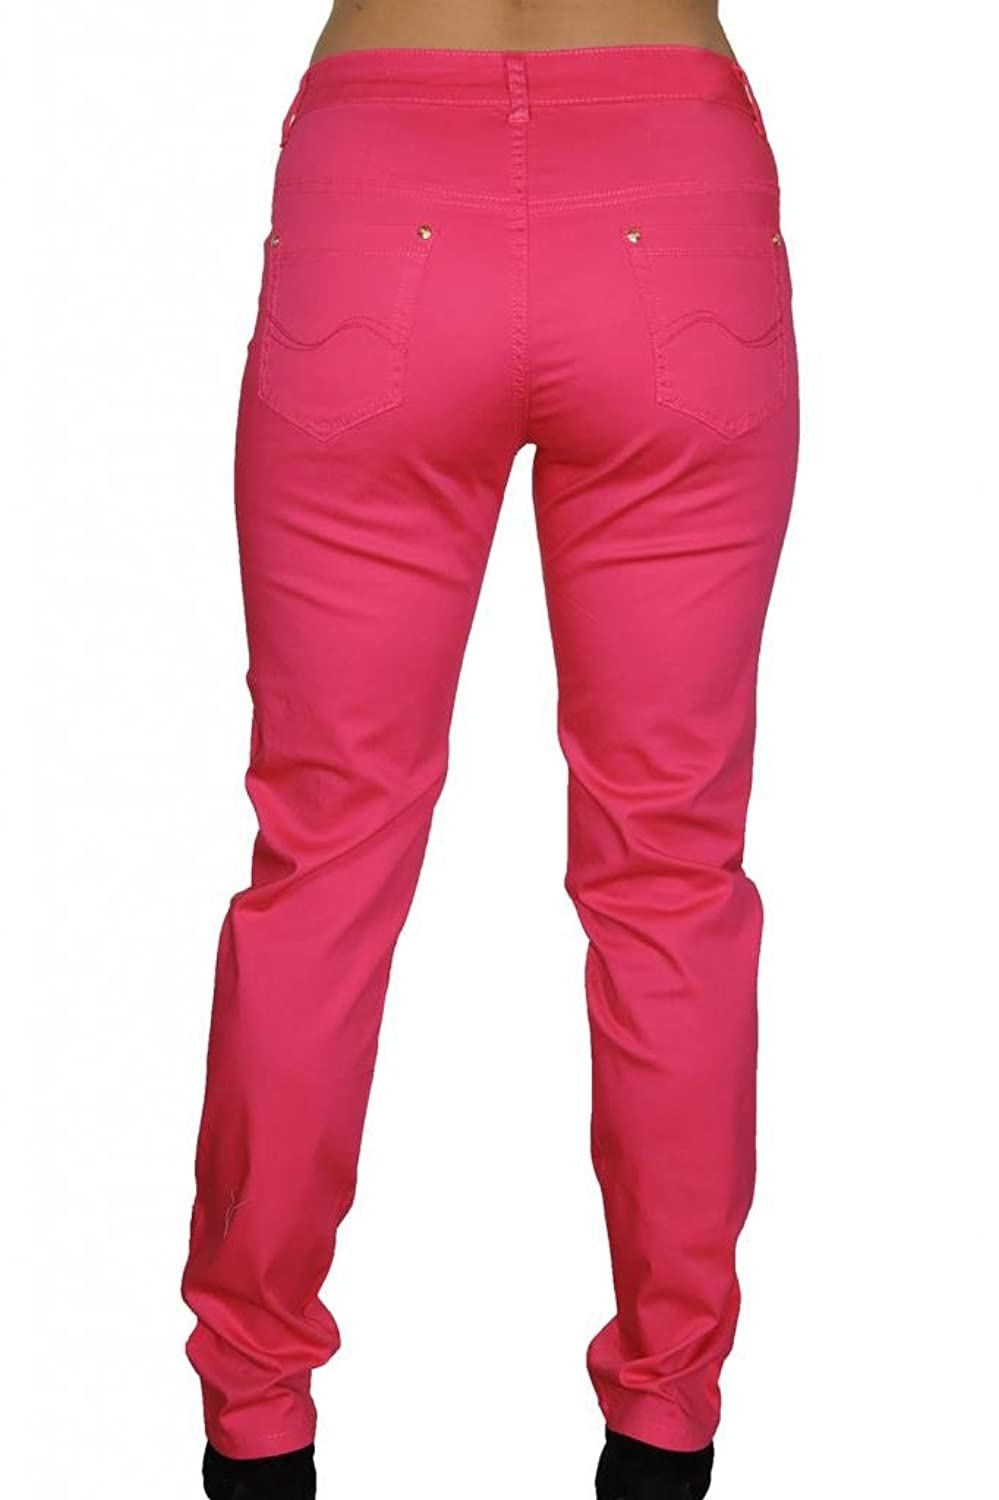 1417-3) Plus Size Cotton Feel Stretch Tapered Leg Jeans Hot Pink ...